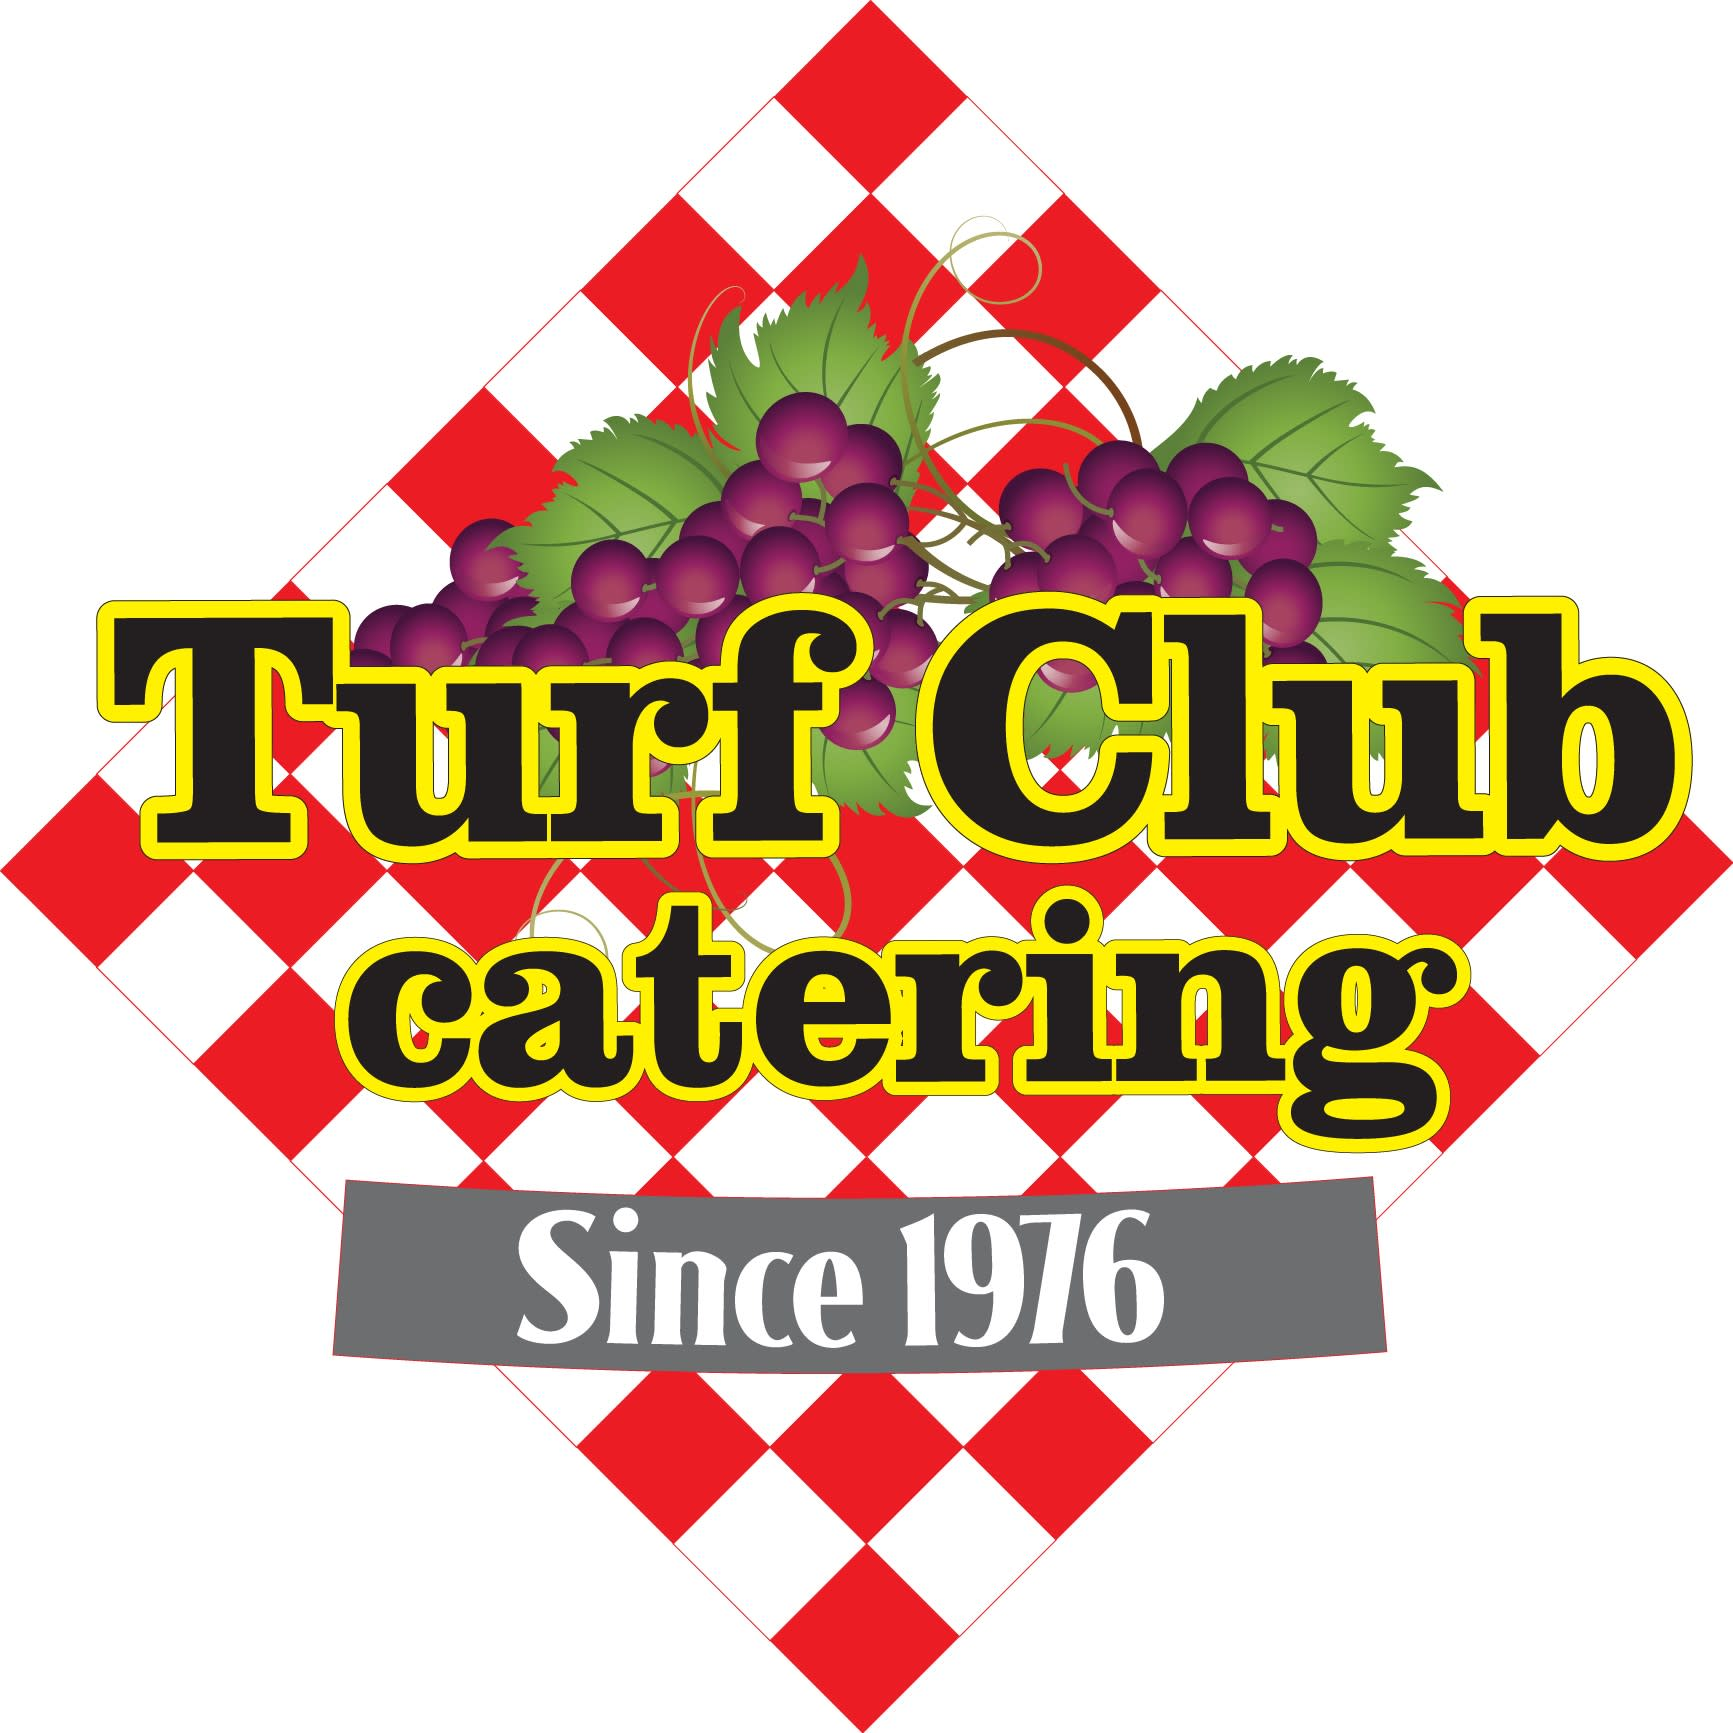 Turf Club Catering and Deli